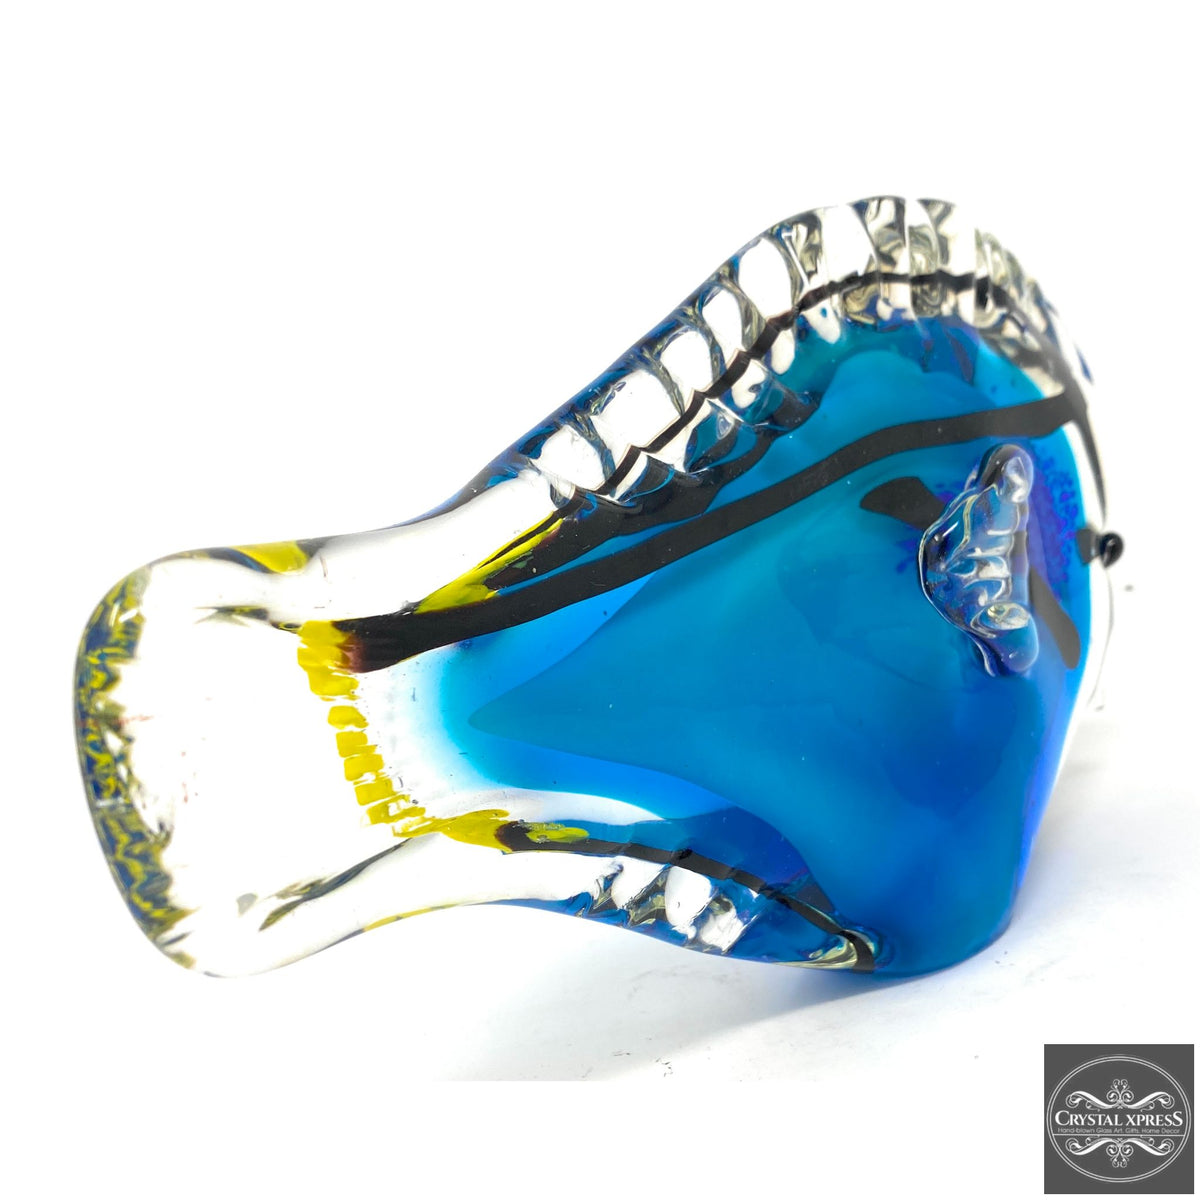 "10.5"" Blue with Yellow Tail Hand Blown Glass Tropical Clownfish FishCrystal Xpress"